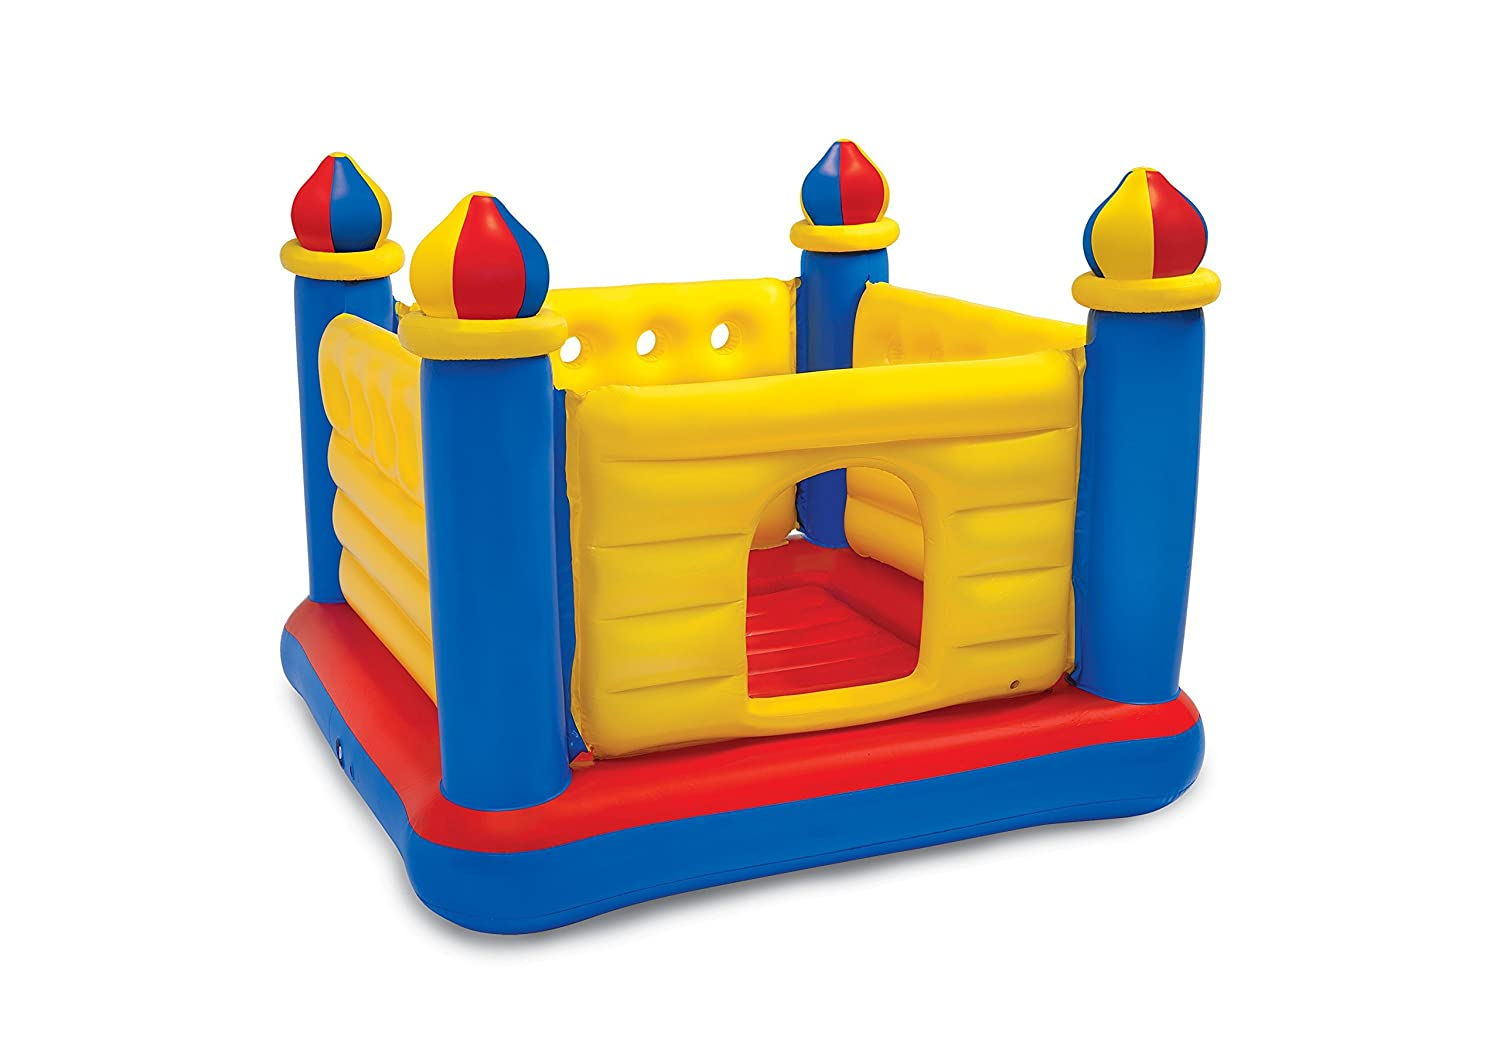 Toy Castles For Little Boys : Best toys for year old boy what to buy them